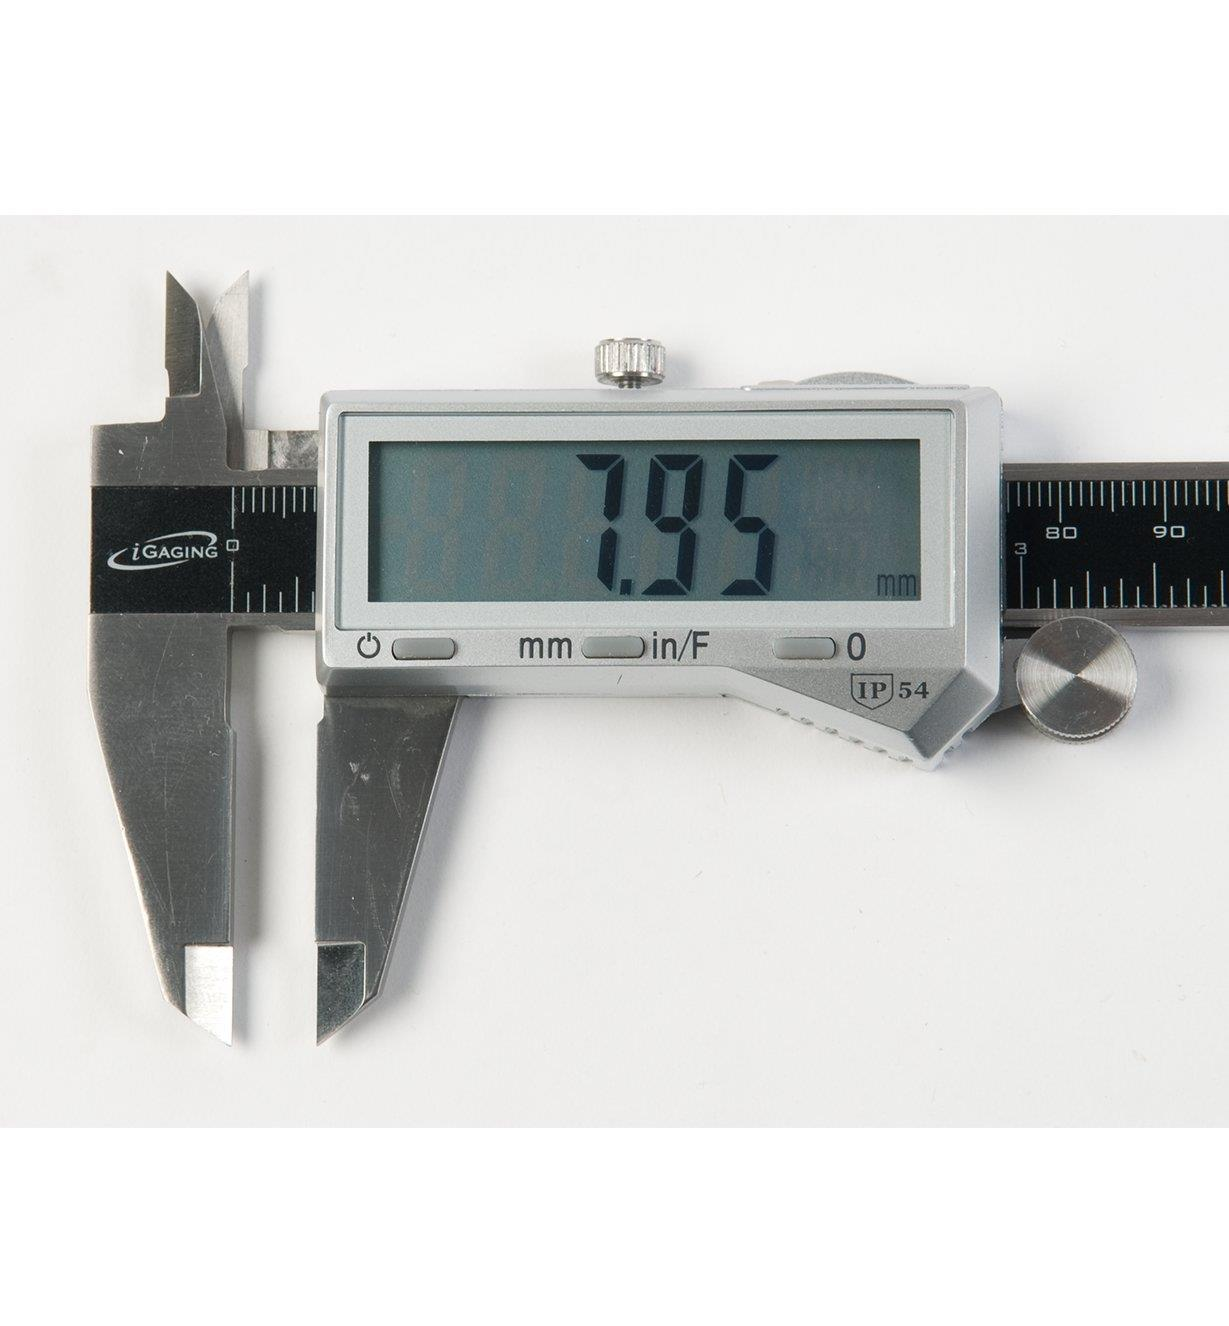 Close-up of caliper screen showing measurement in millimetres